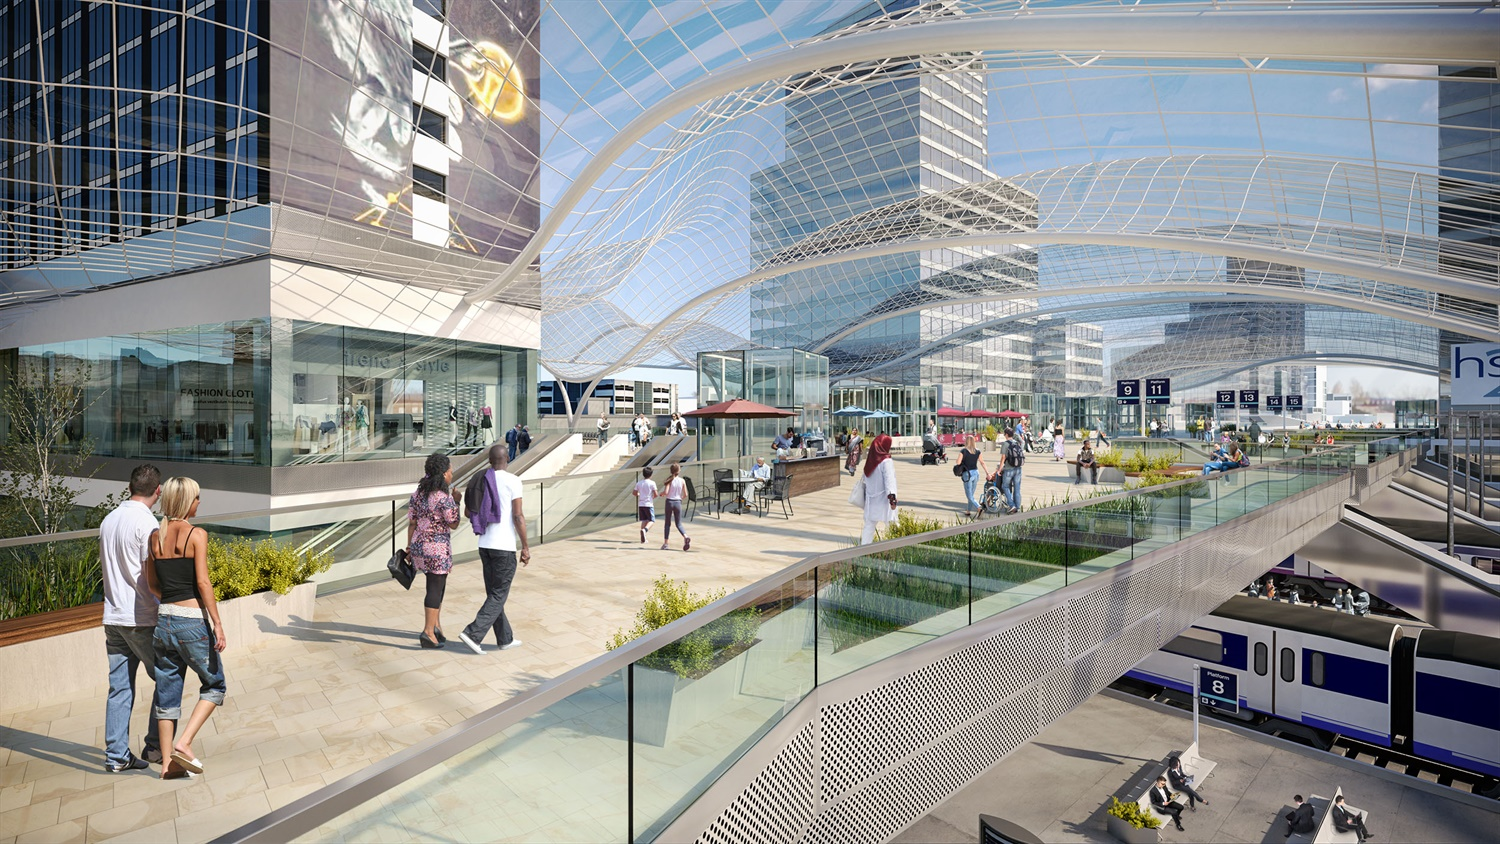 New images of planned £500m Leeds station development revealed